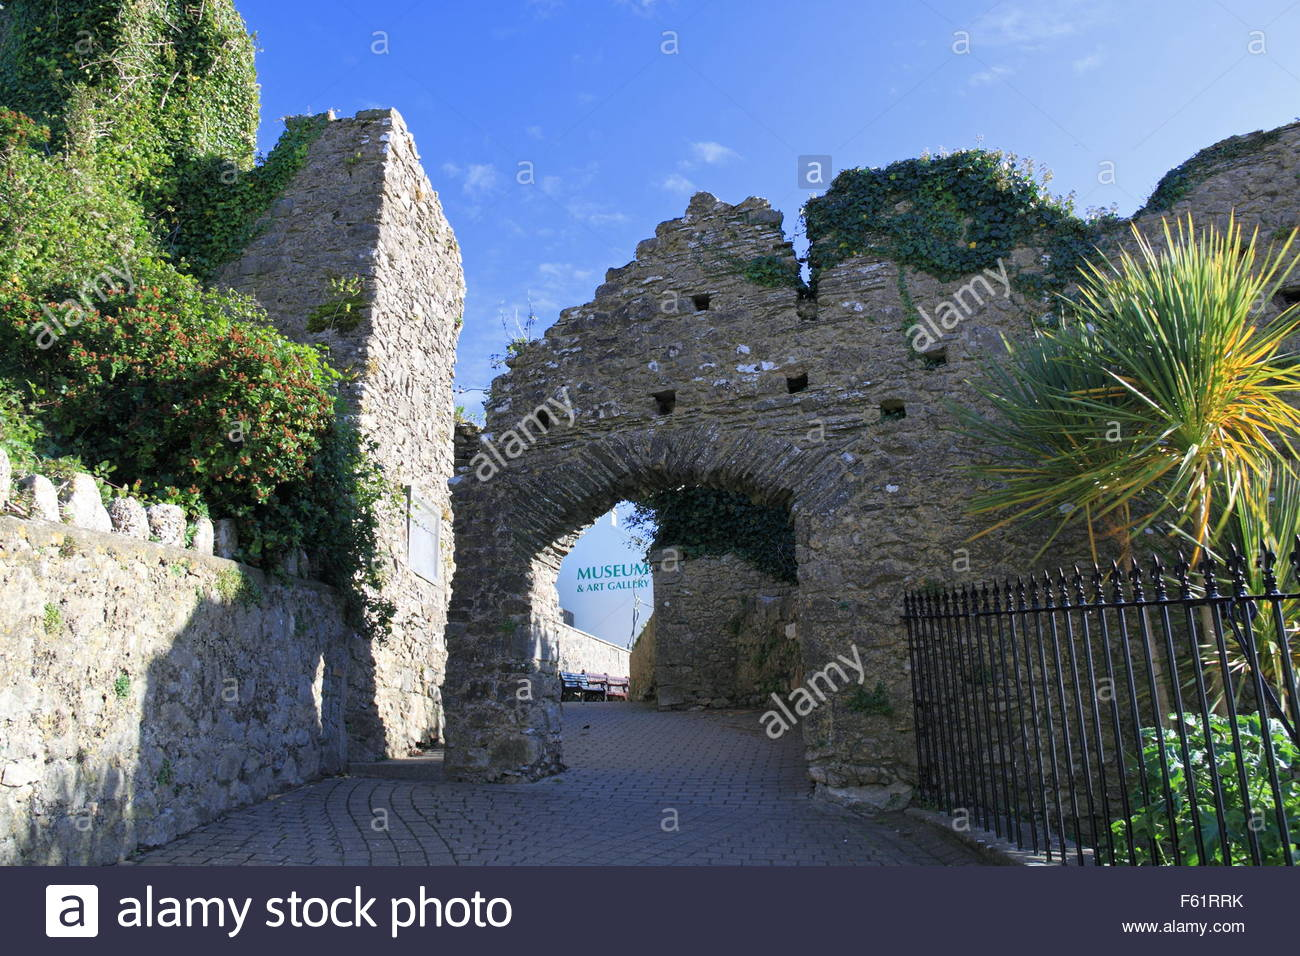 Tenby Museum and Art Gallery South Wales, Tenby Castle walls with Tenby Museum and Art Gallery ...